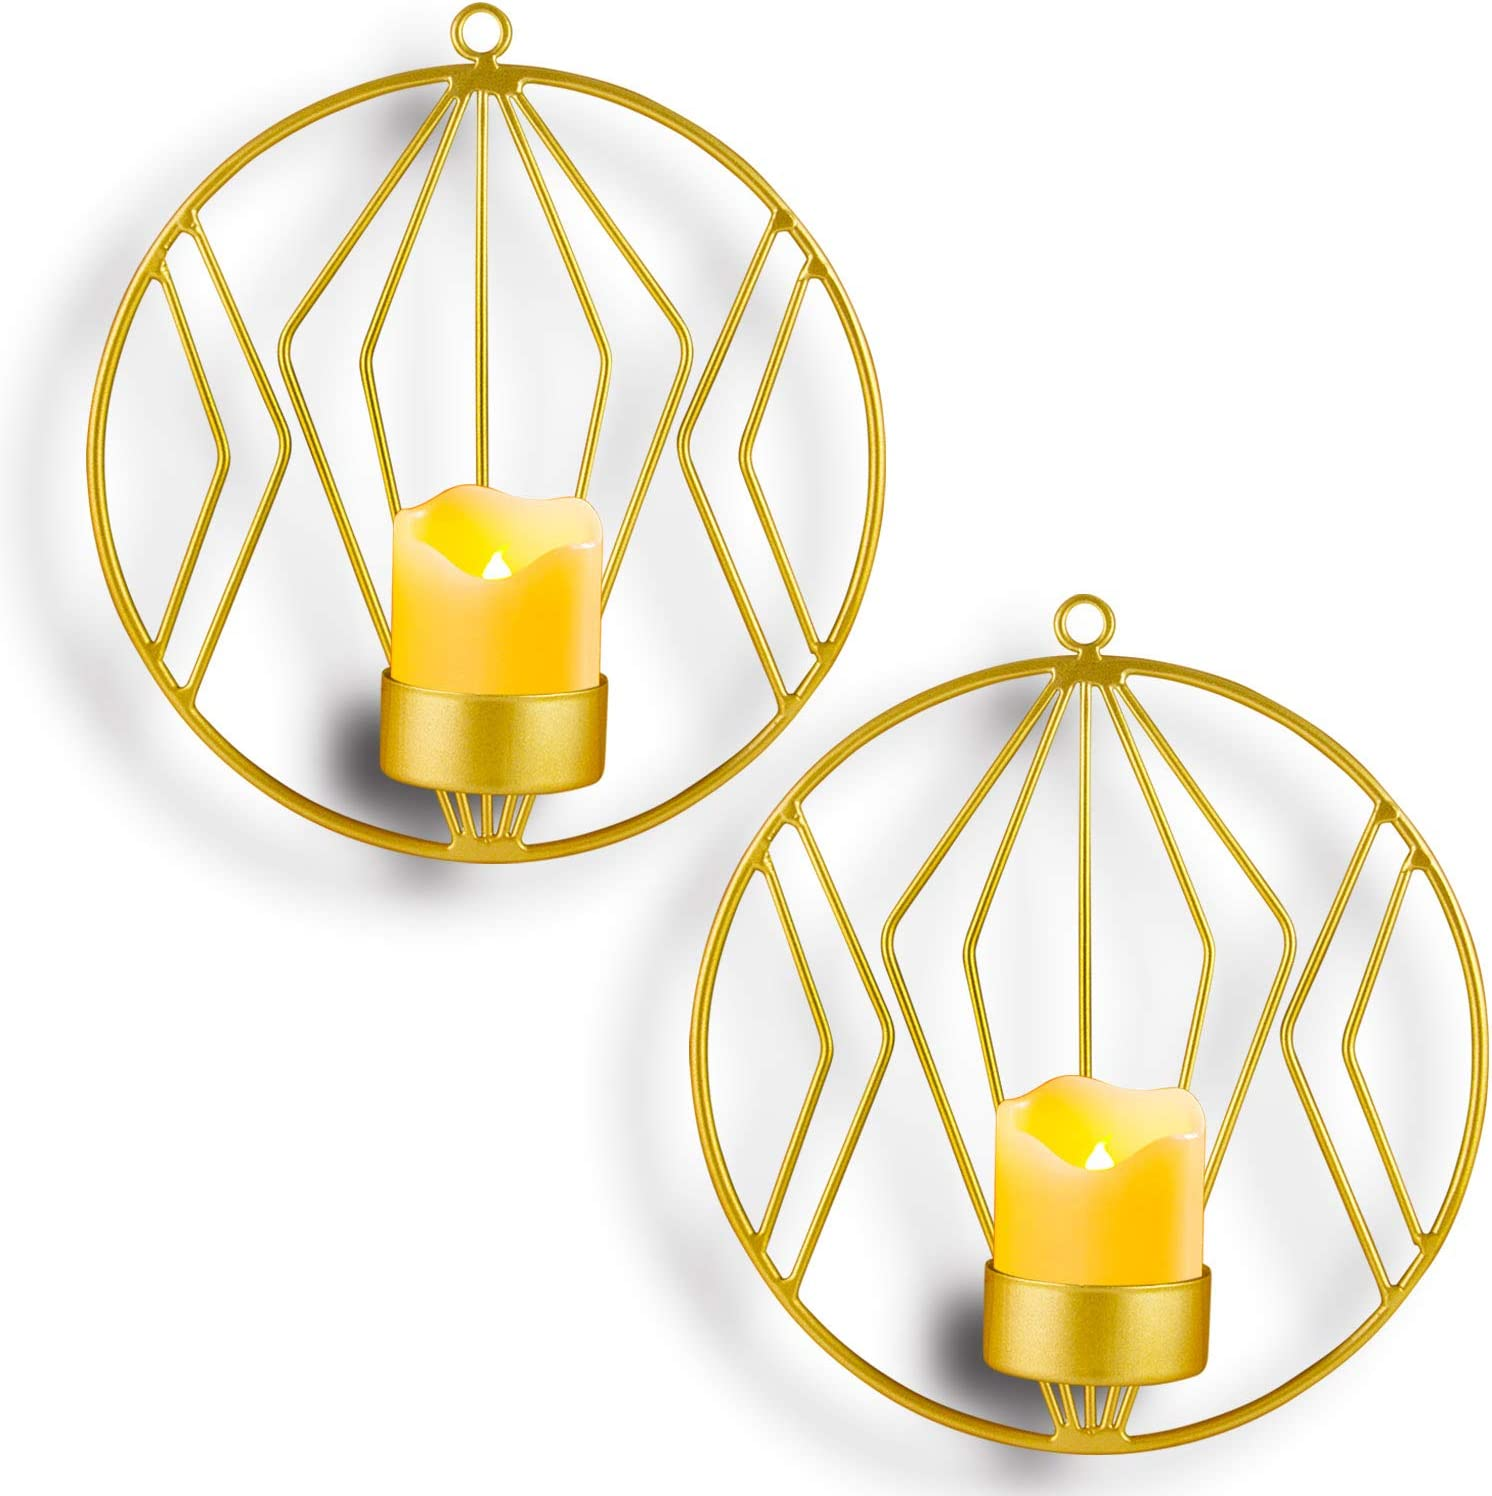 Kathy Wall Mounted Candle Holder,Set of 2 Tea Light Candle Sconces Metal Wall Decor for Home Living Room Wedding Events,Gold